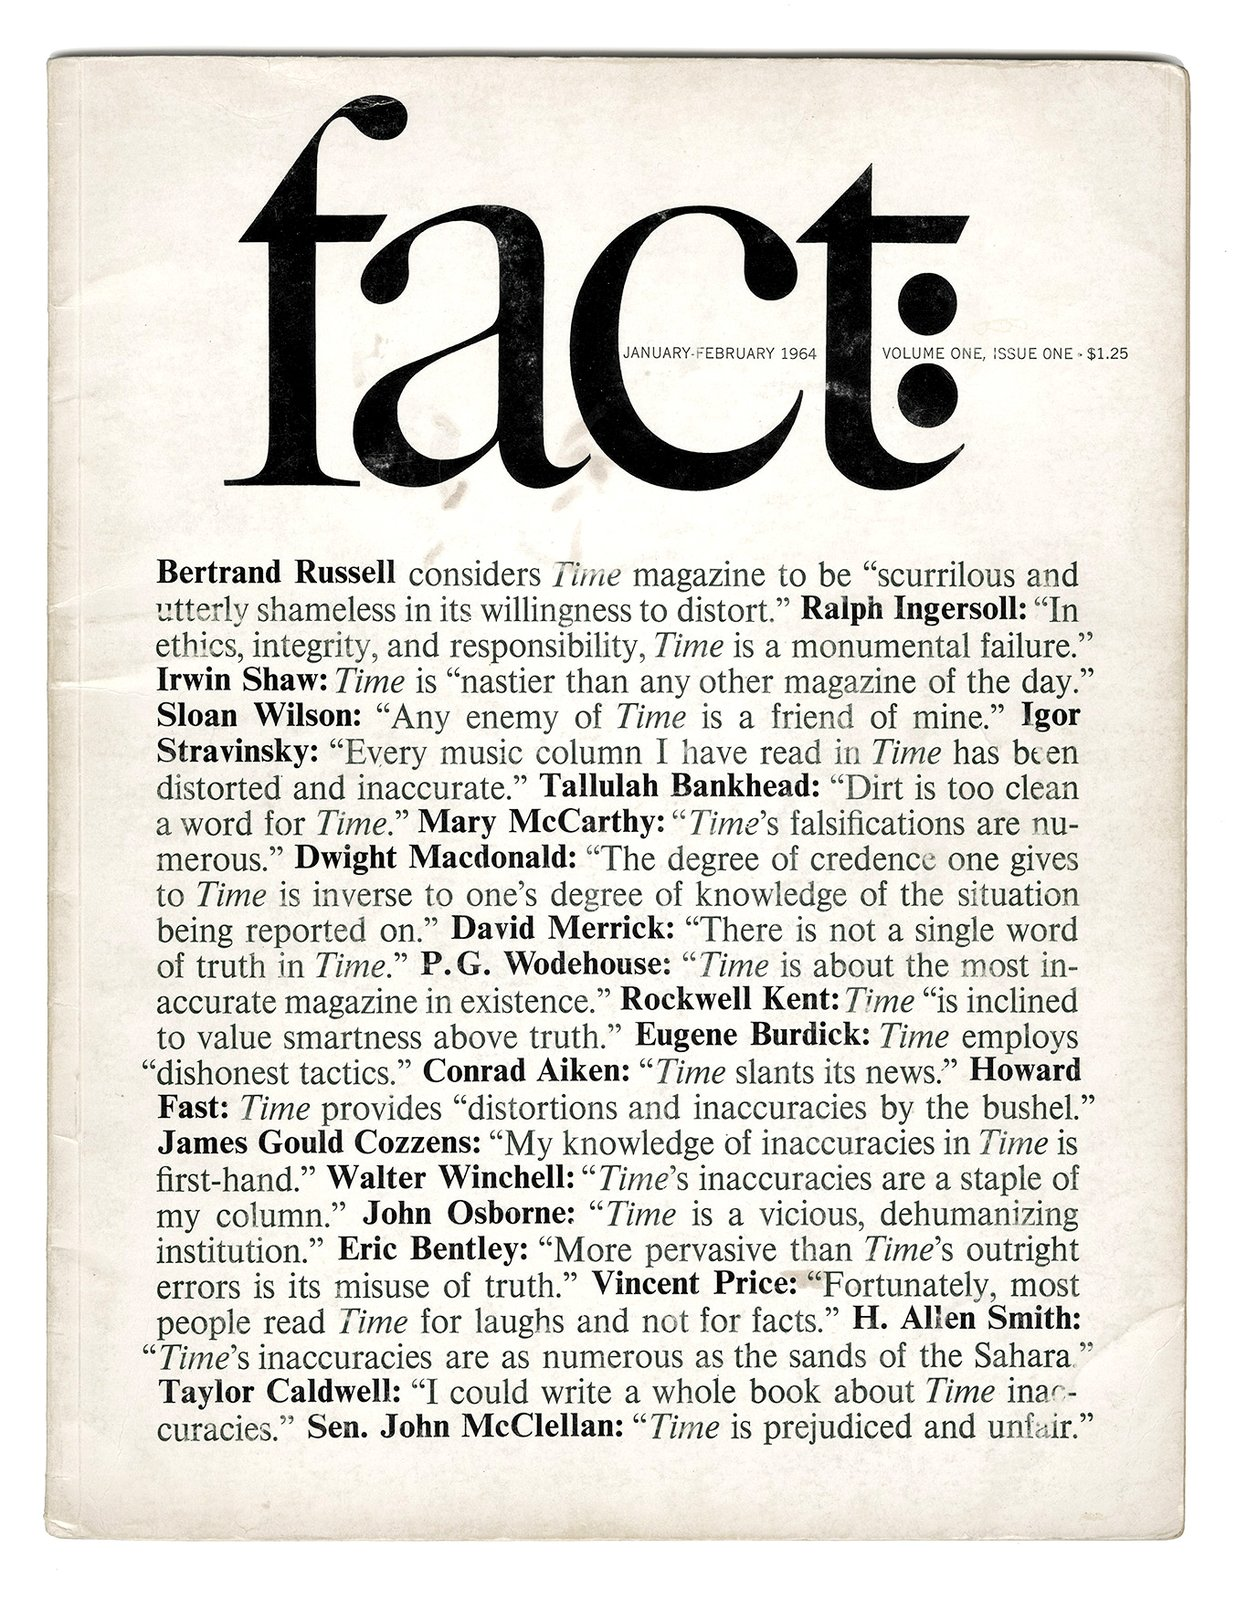 The inaugural issue of Fact launched by Ralph Ginsburg and Herb Lubalin in January 1964. A typical example of a Fact cover - they were stark, black and white, and mostly typographic.Lubalin introduced many subtle flourishes and as always, the kerning, leading and line breaks are handled with consummate skill.  Graphic Design and Illustration from New York's Hidden  Graphic Design Gem